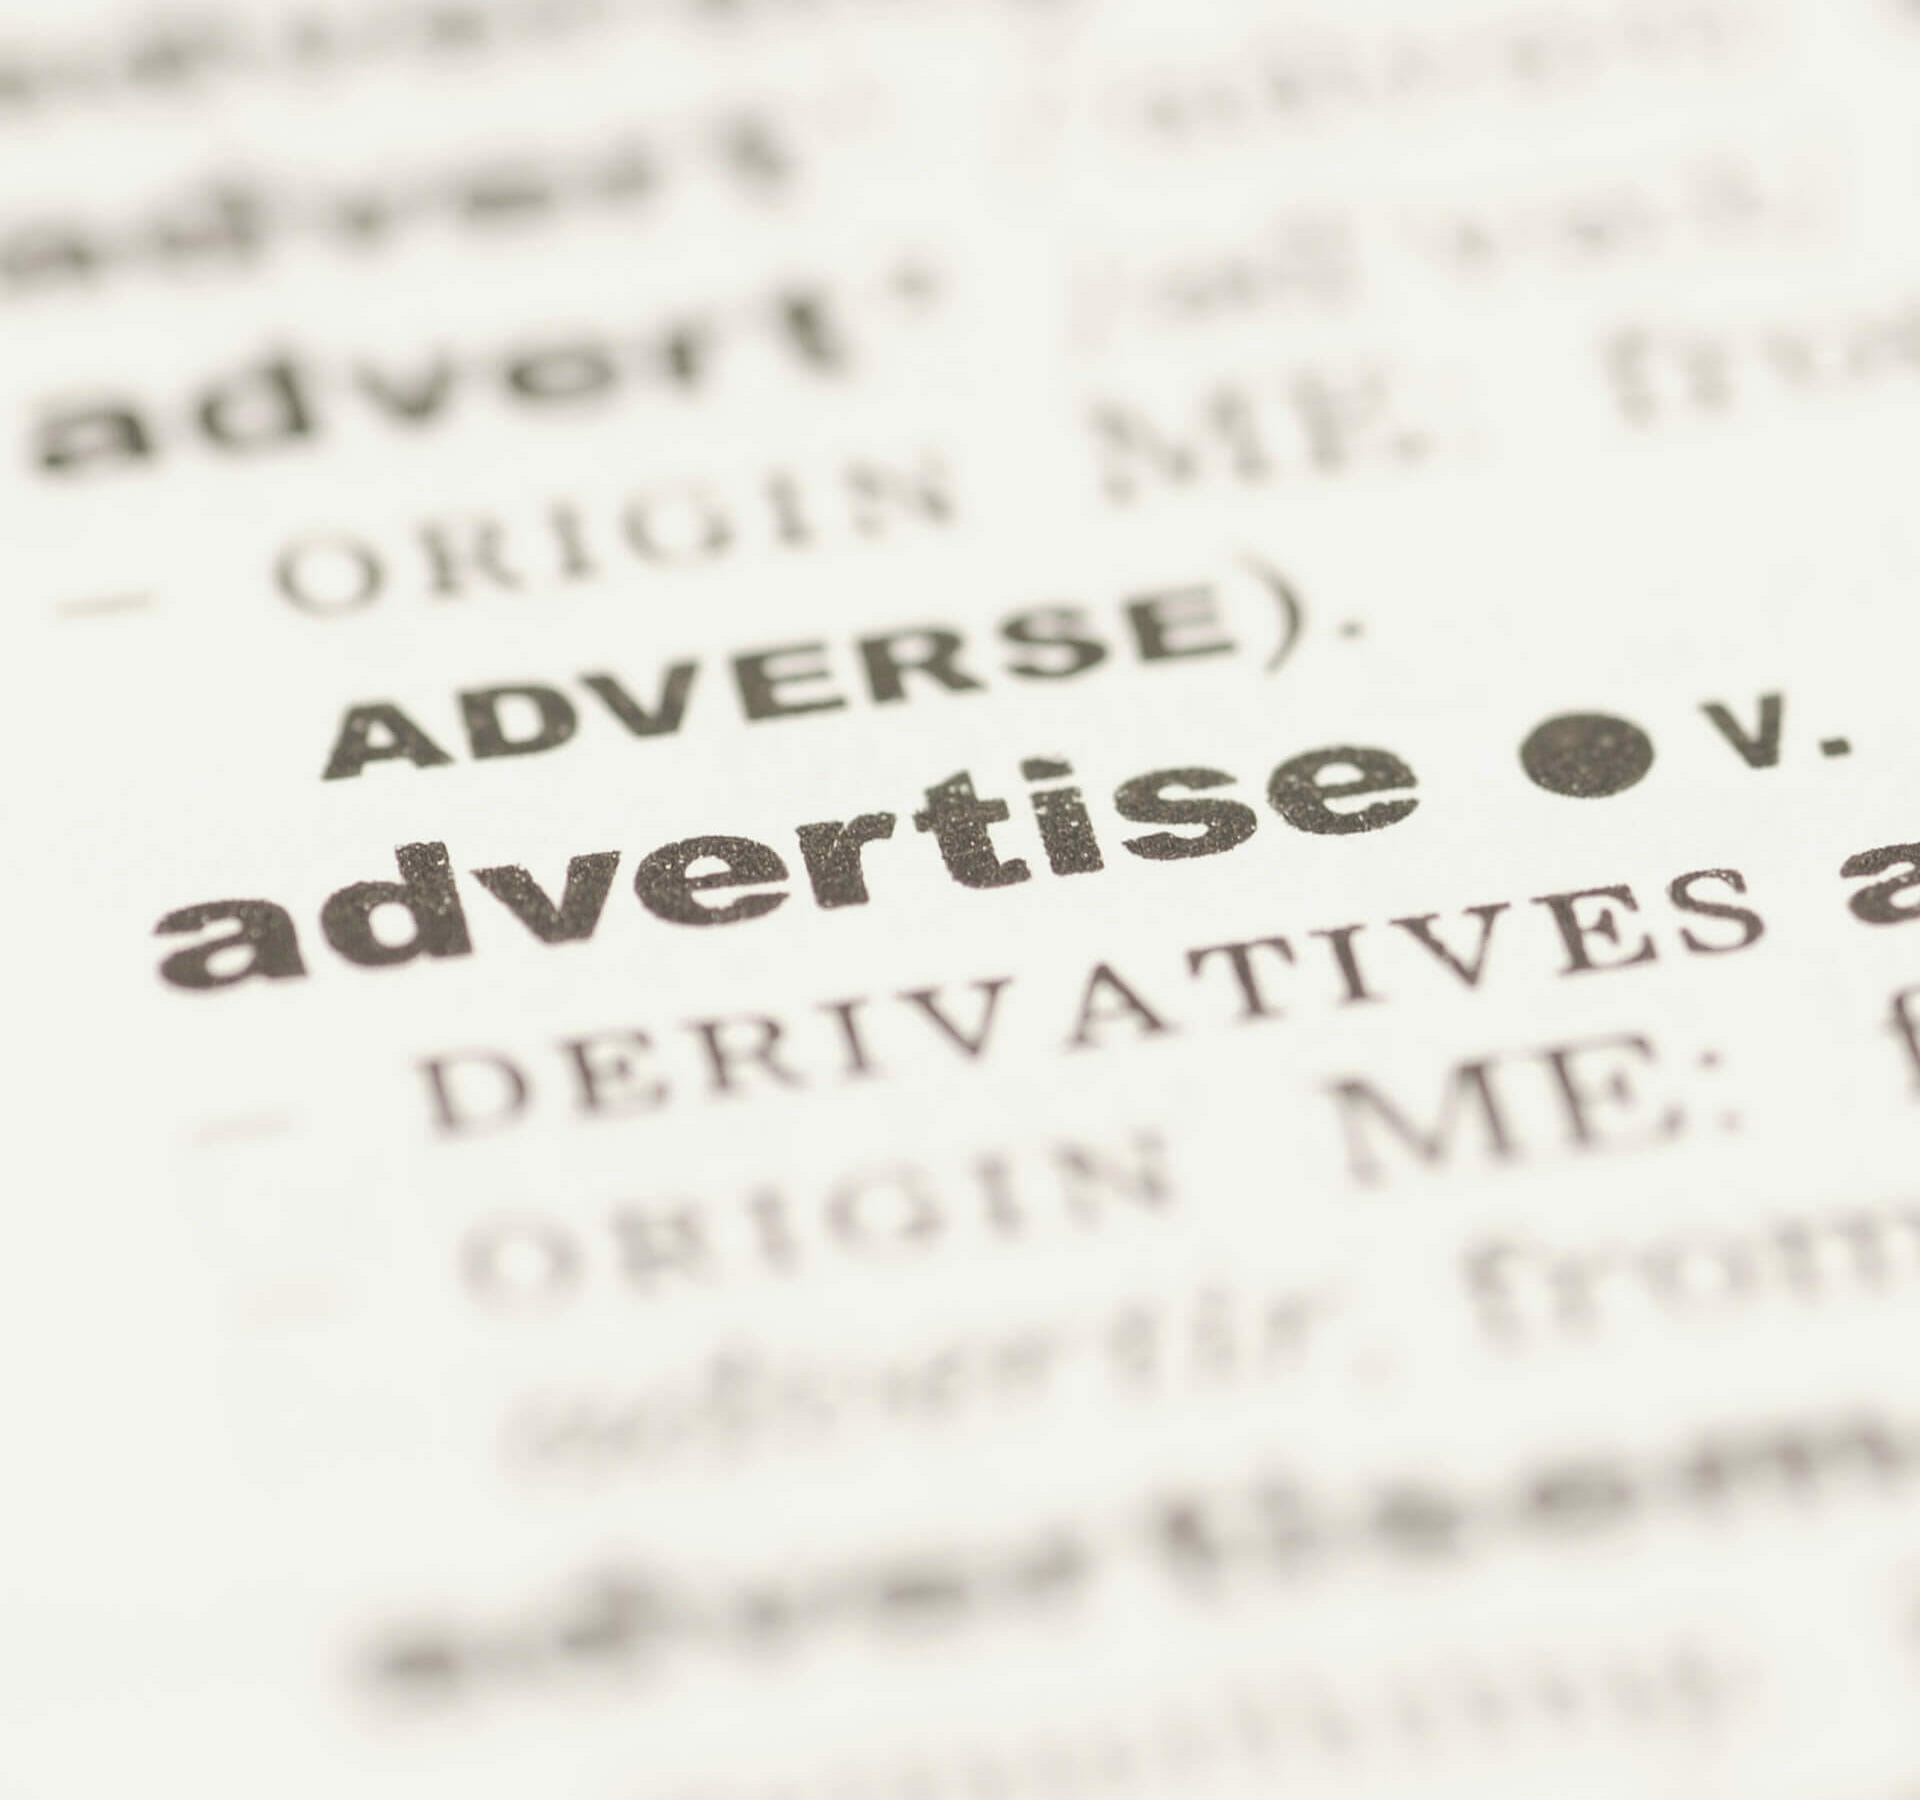 7 Advertising Strategies You Need to Add to Your Marketing Plan